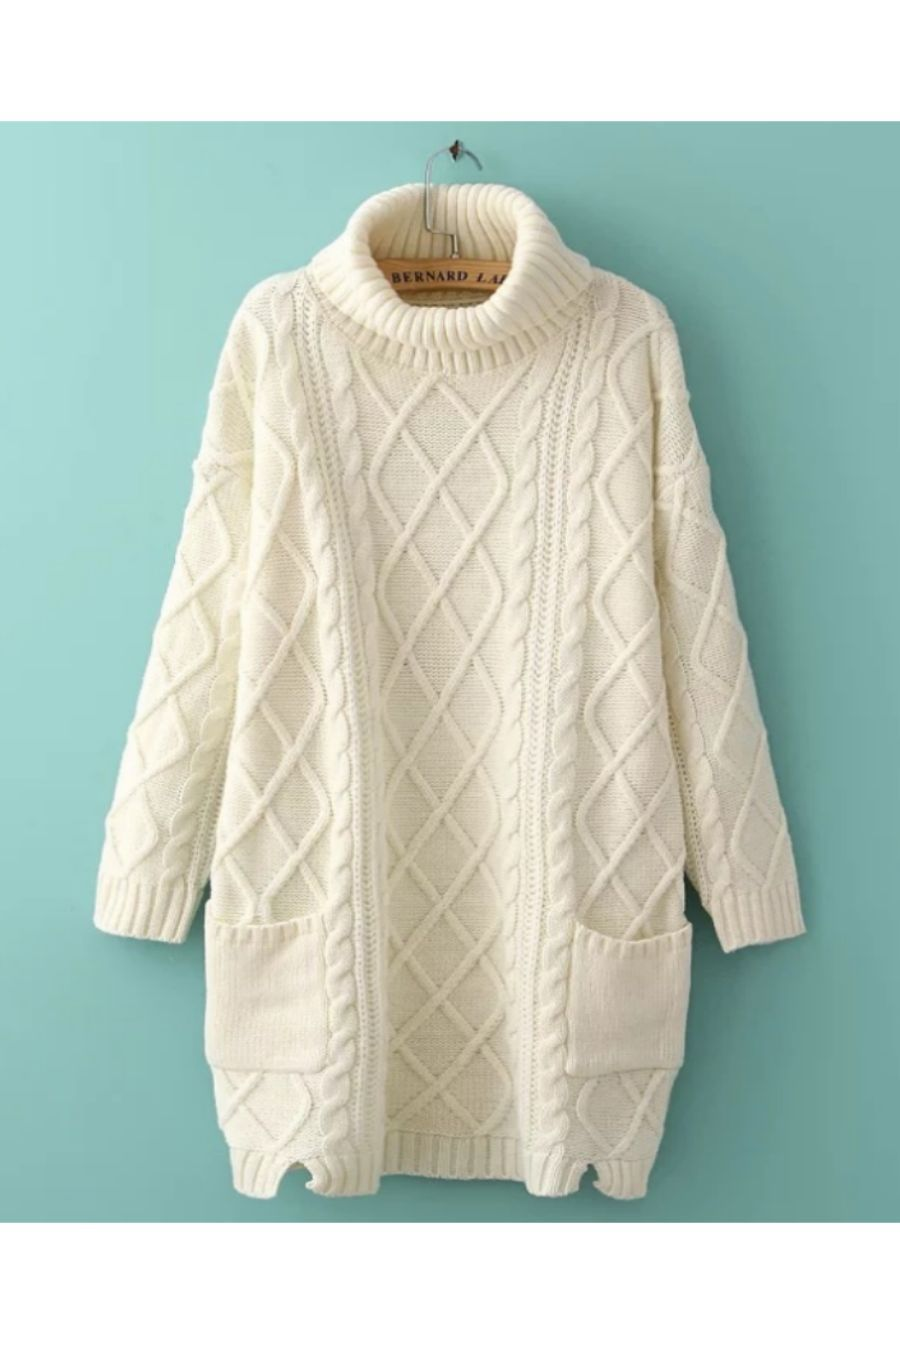 White Cable Knitted Sweater | Long sleeve turtleneck, Cable knit ...